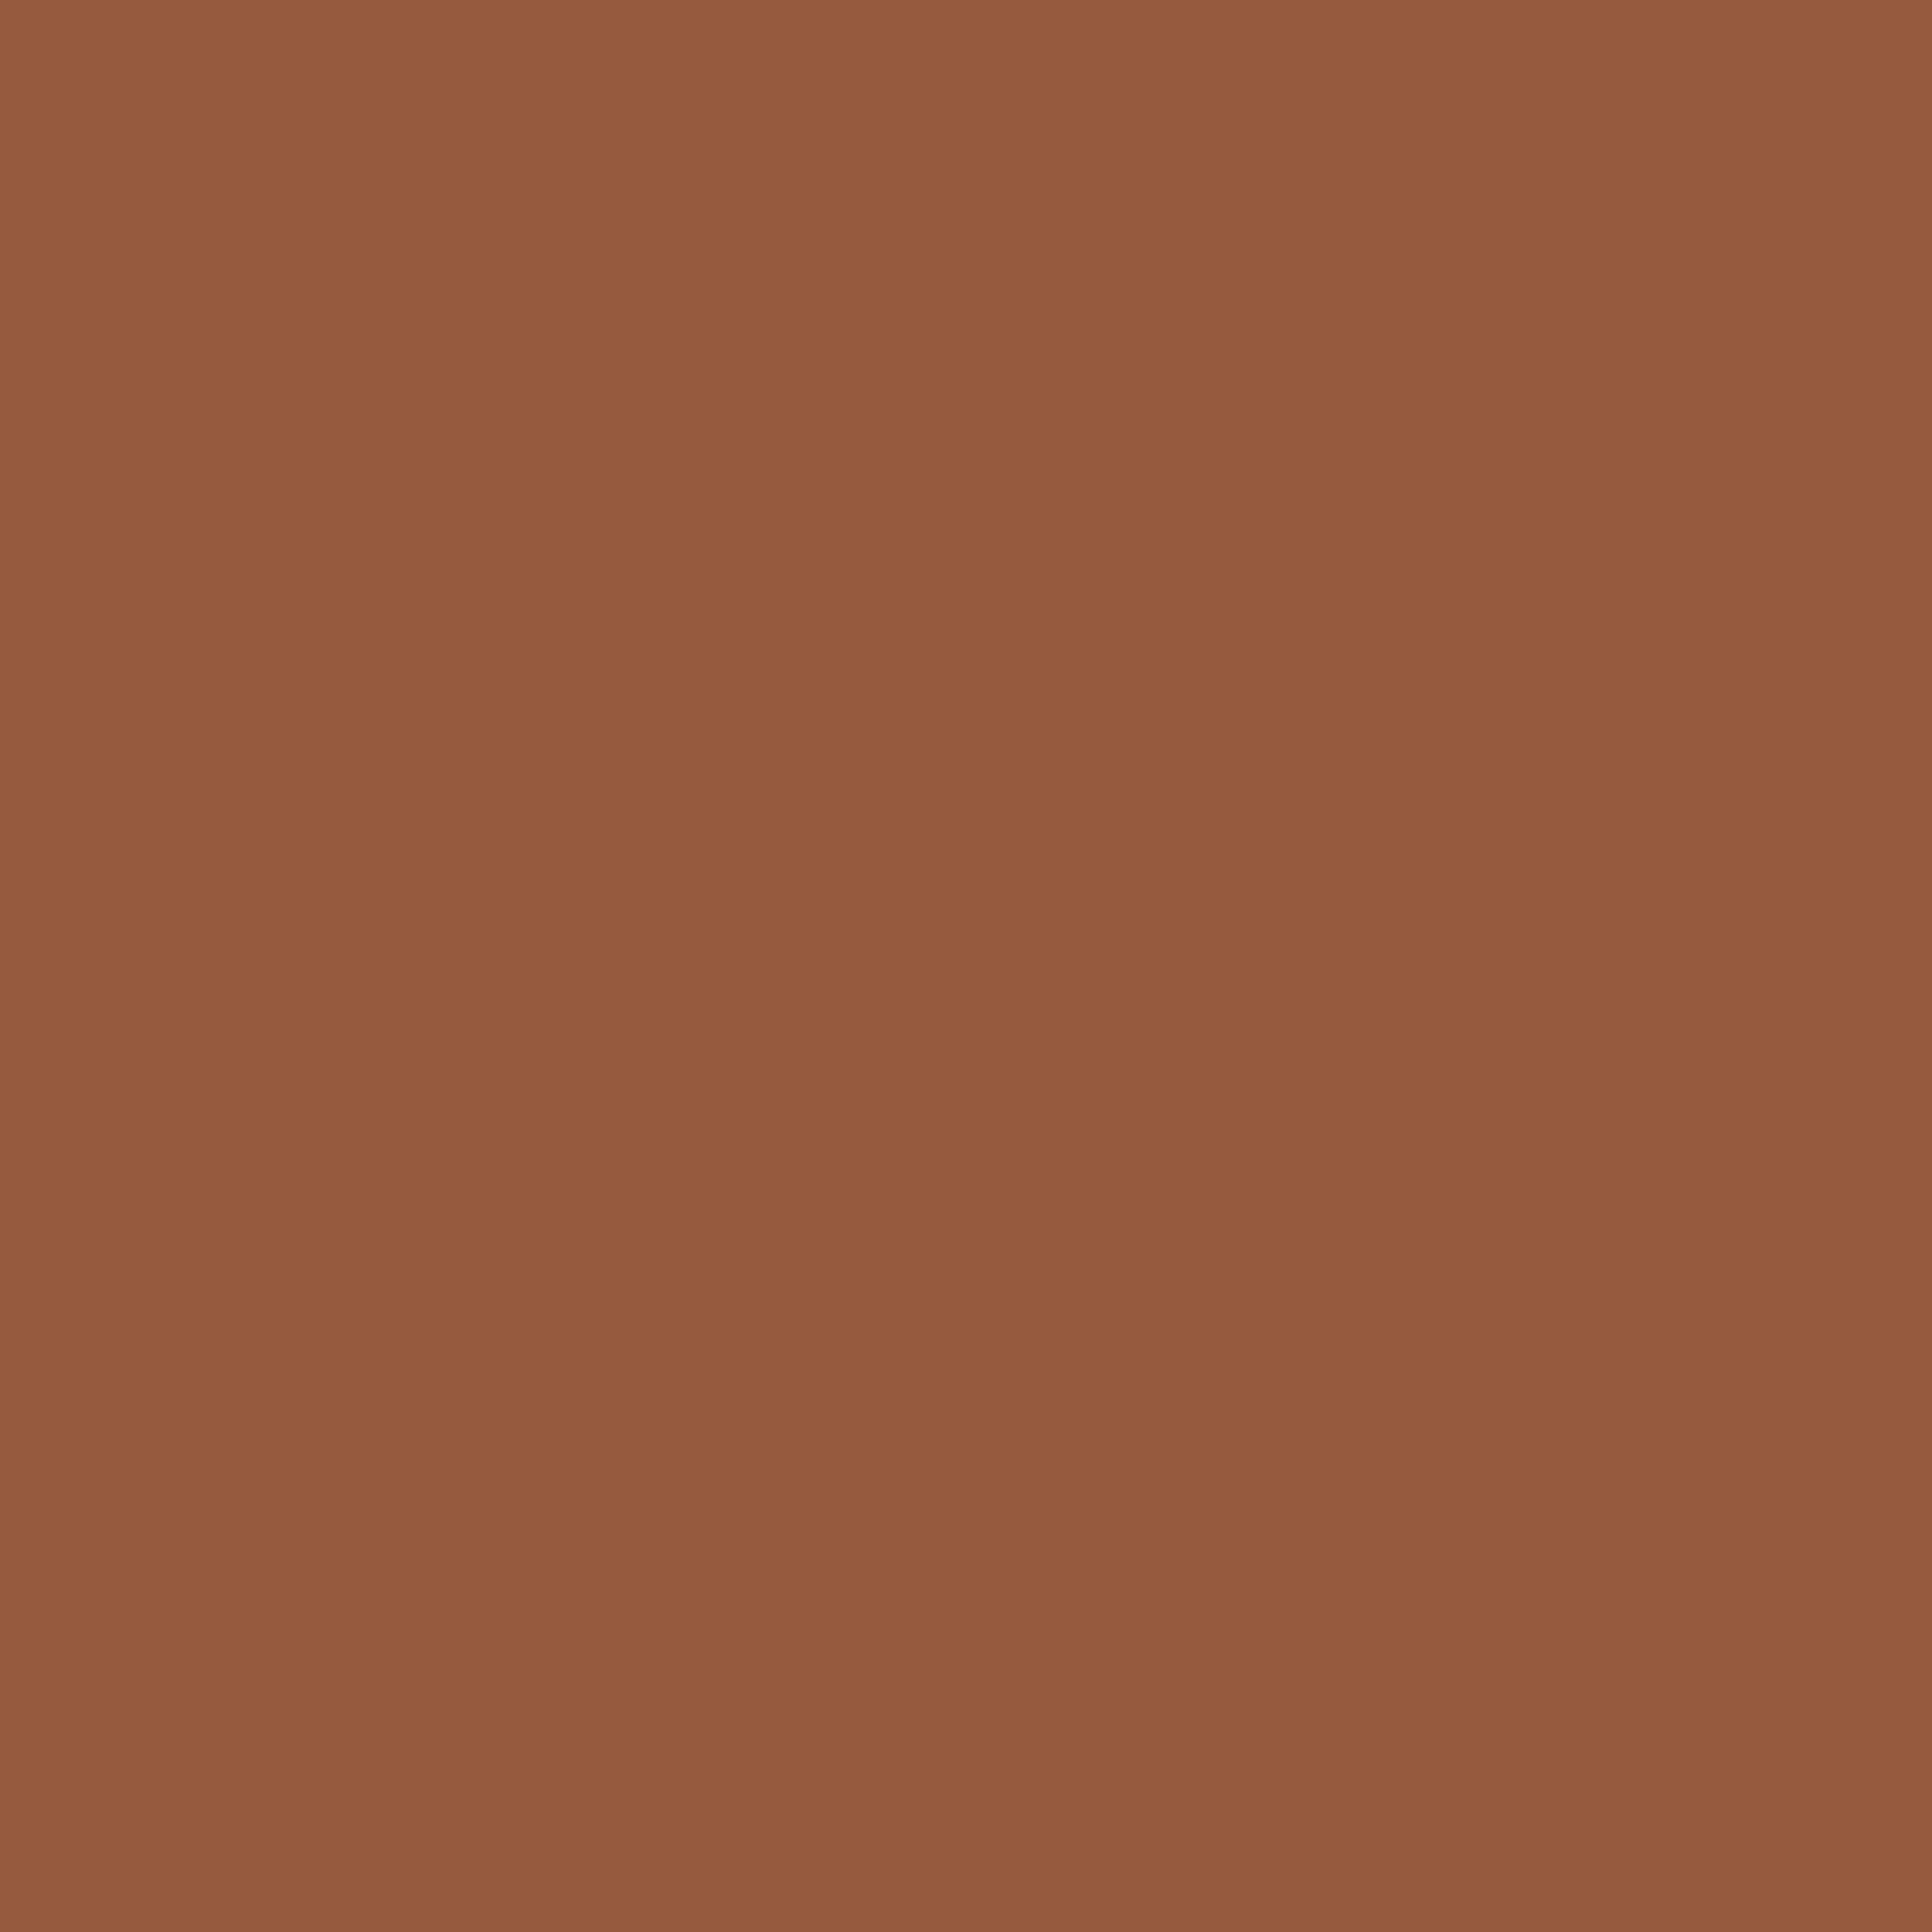 3600x3600 Coconut Solid Color Background